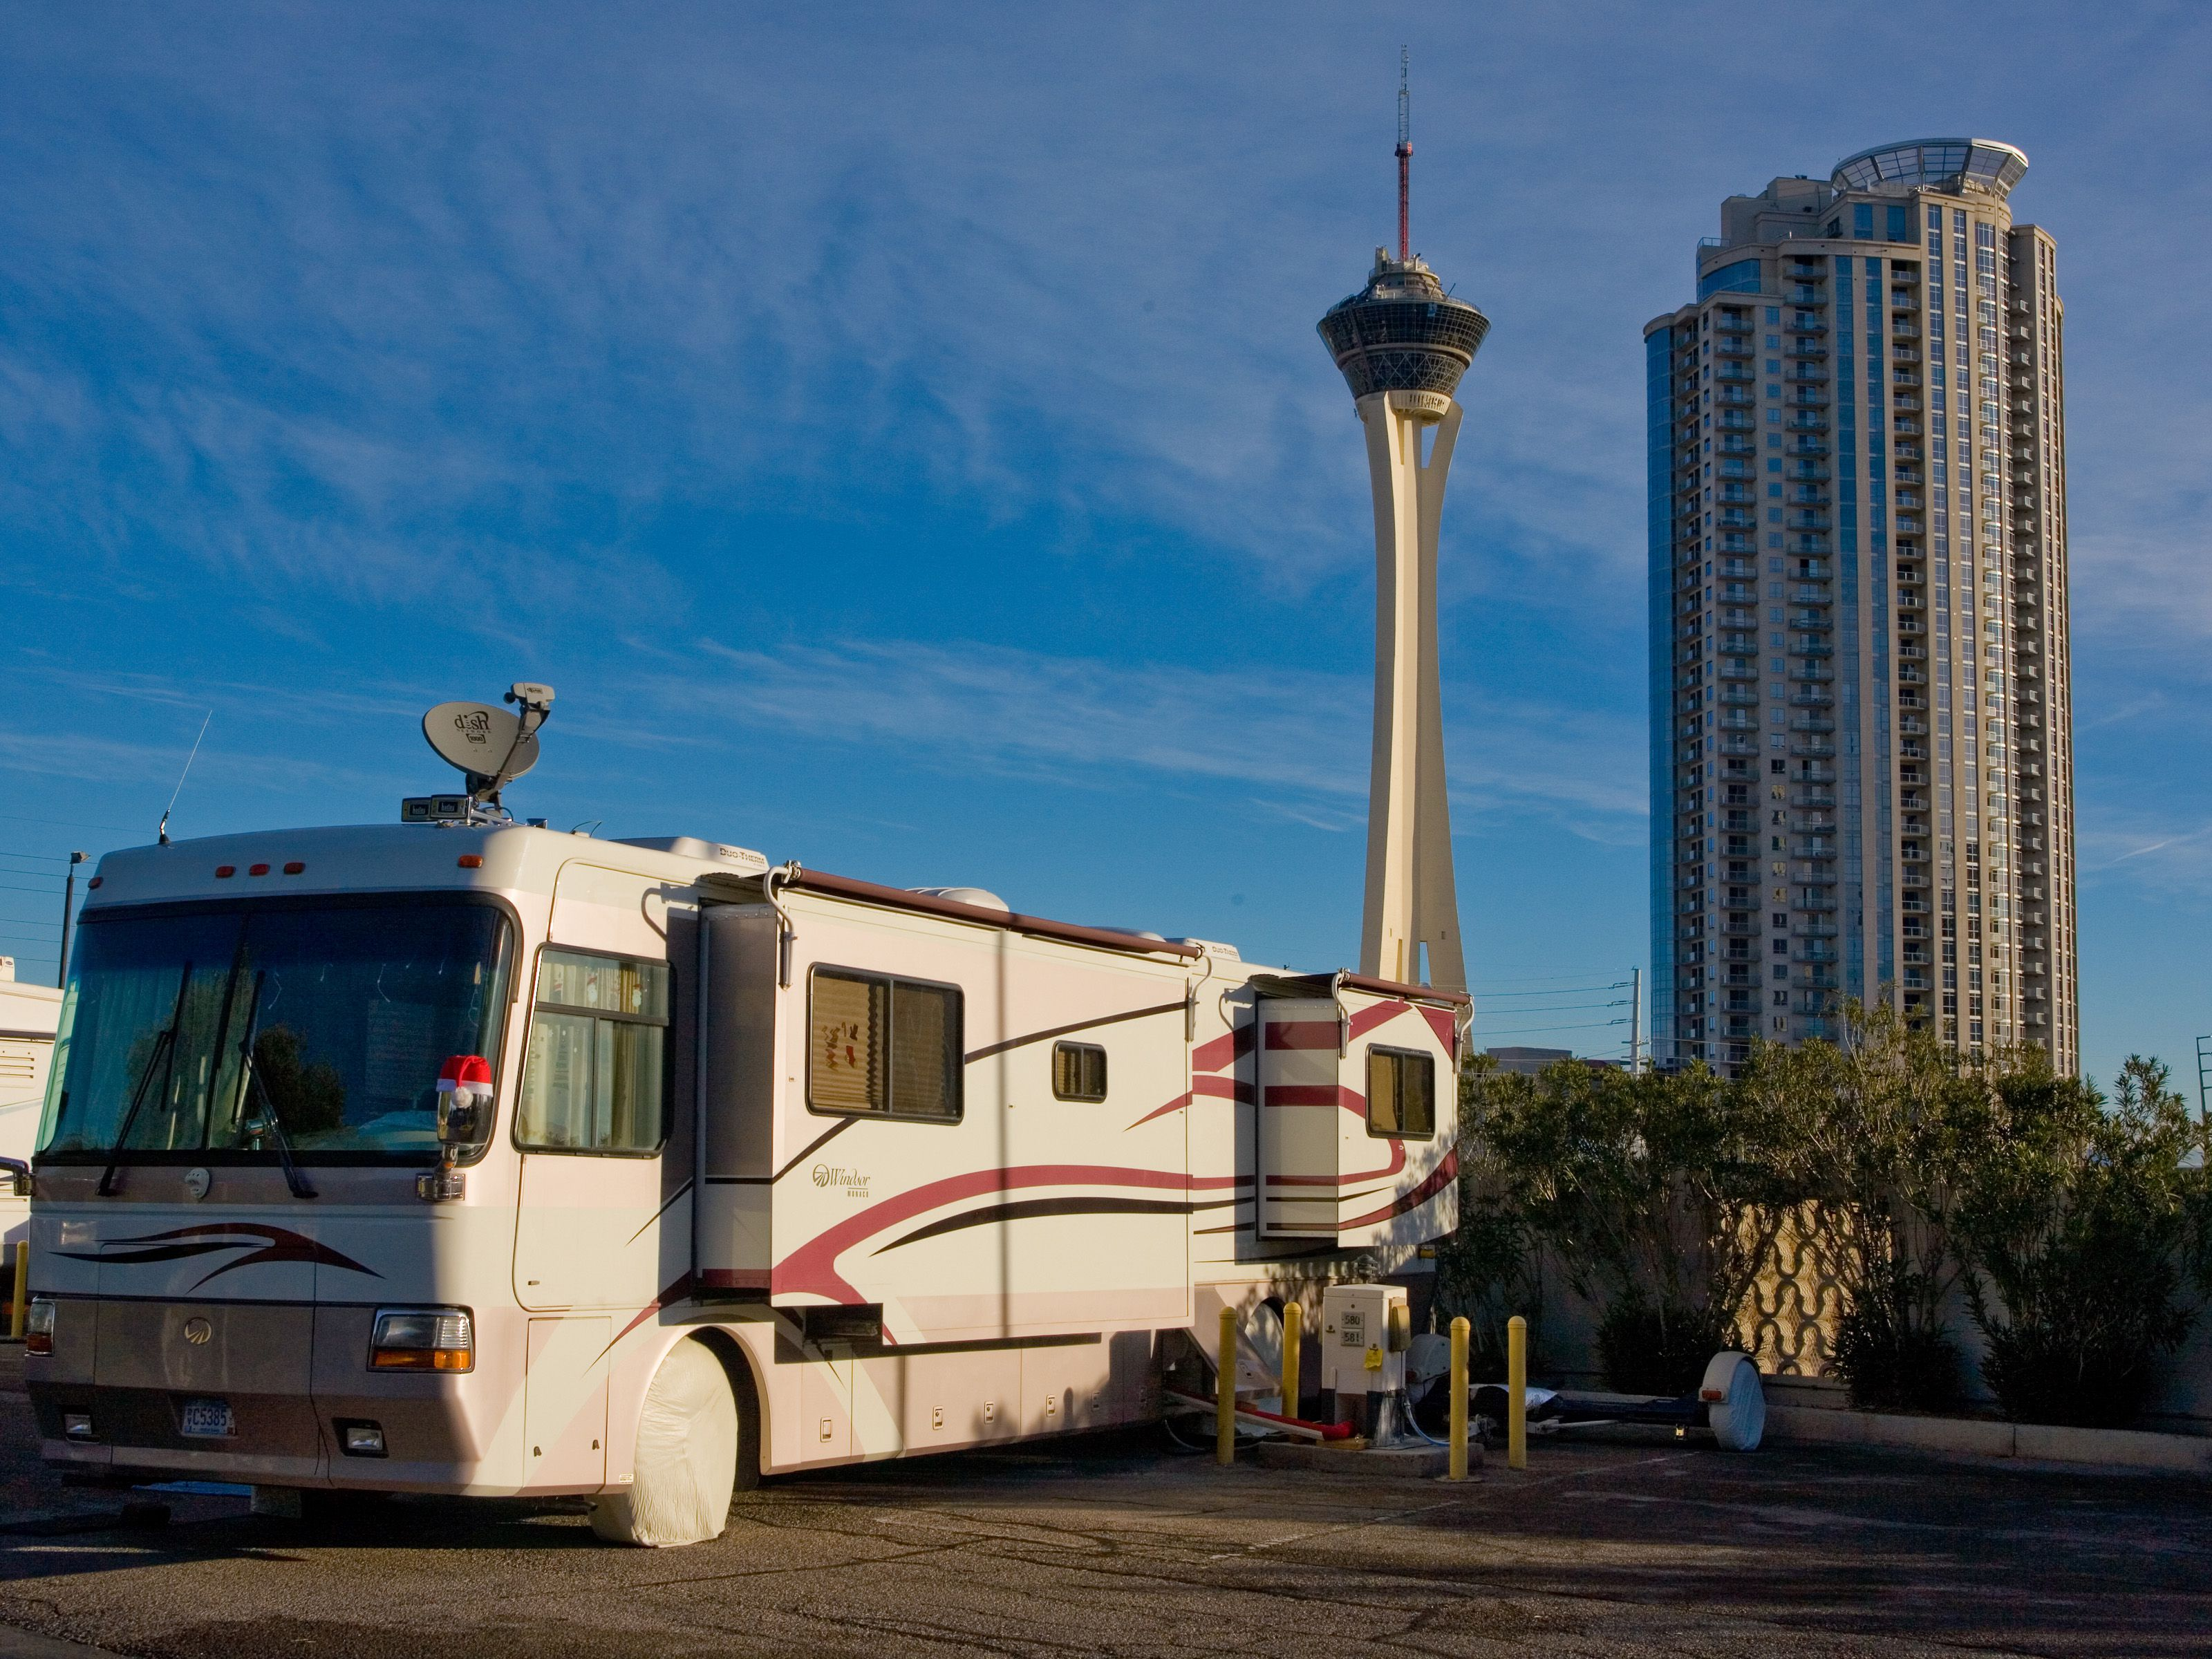 RV vs Hotels: Which One Is Cheaper?